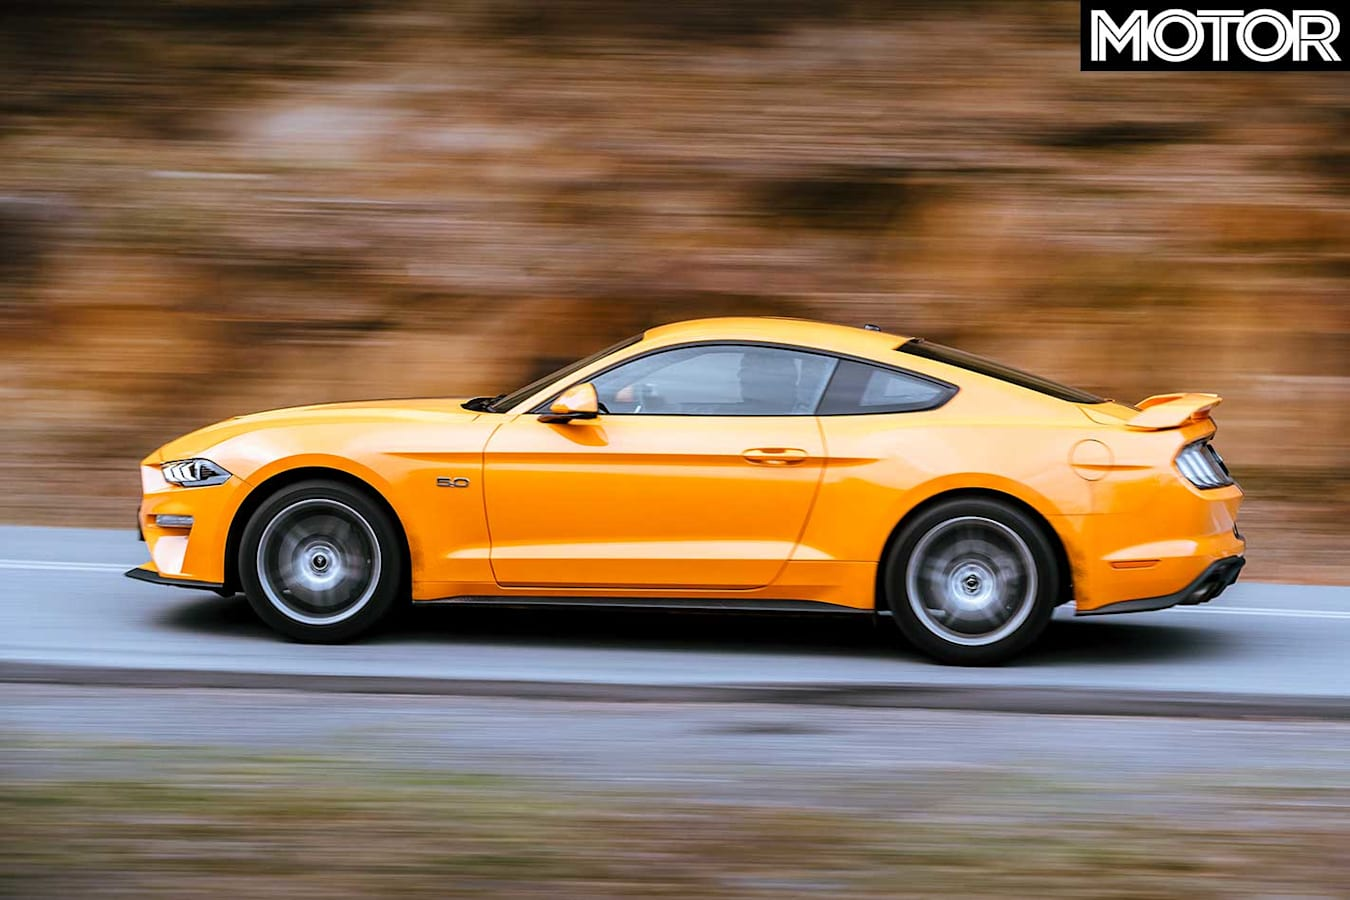 2018 Ford Mustang GT Performance Side Profile Jpg